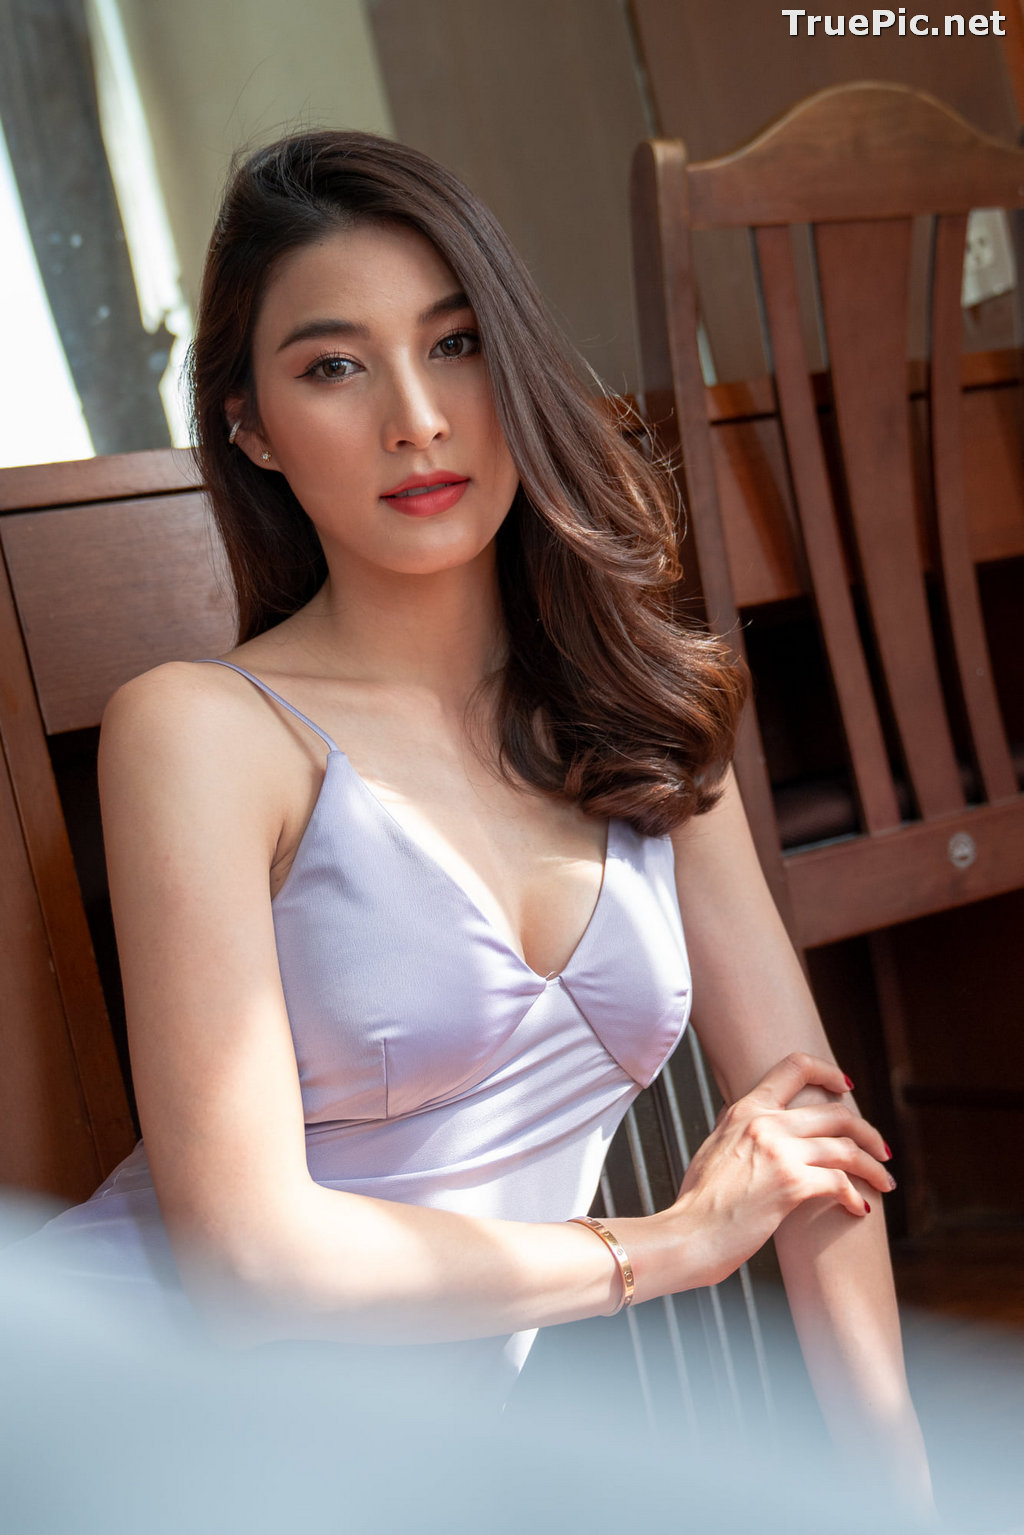 Image Thailand Model - Ness Natthakarn (น้องNess) - Beautiful Picture 2021 Collection - TruePic.net - Picture-57